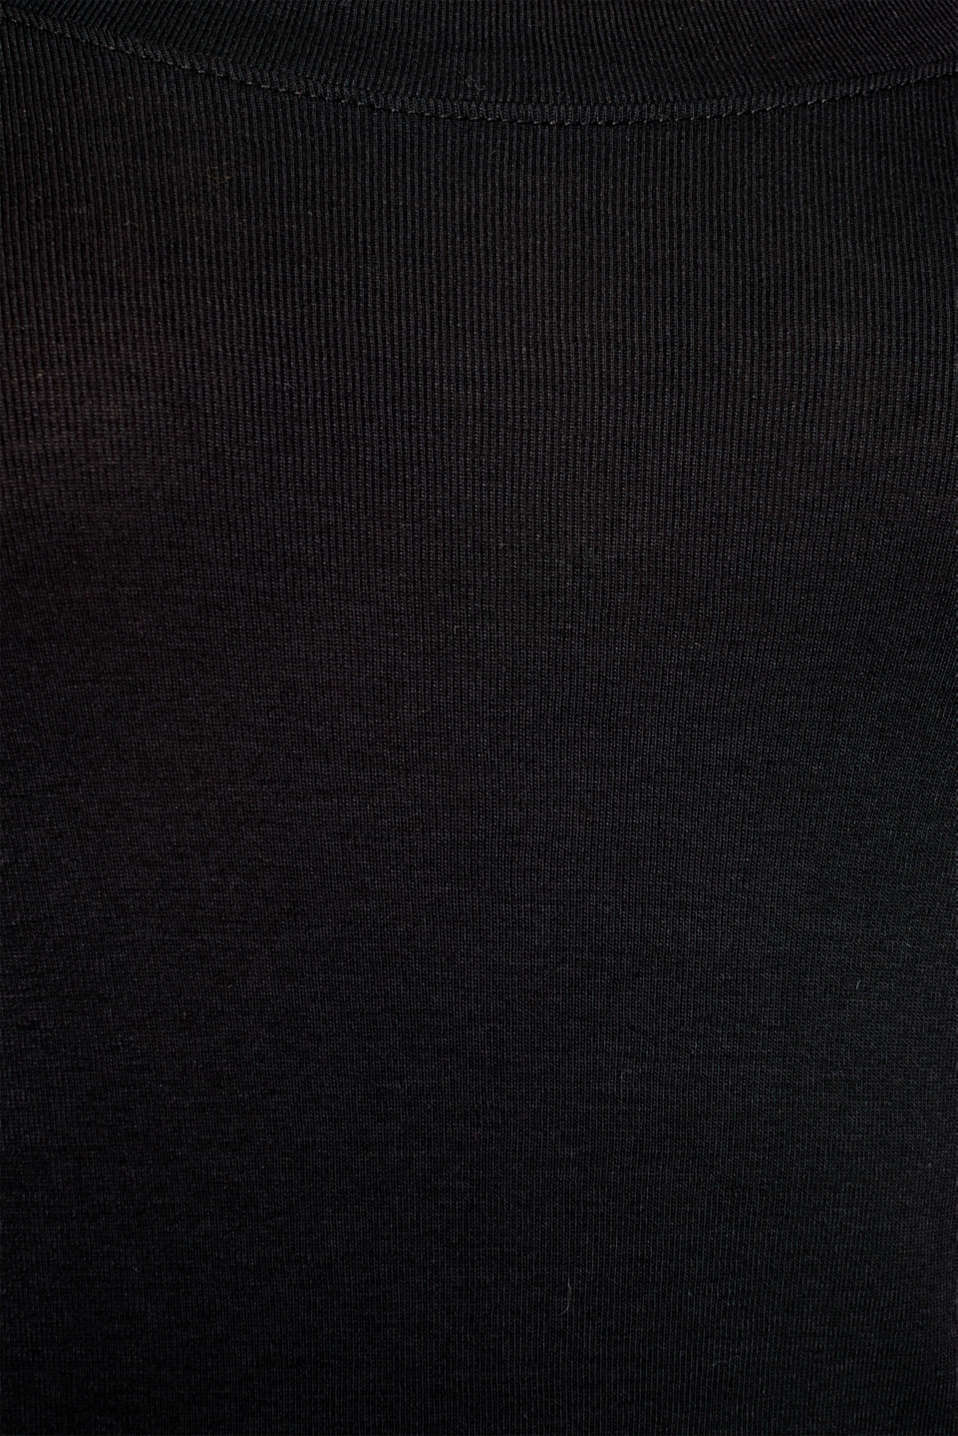 Long sleeve top with a large neckline, 100% cotton, BLACK, detail image number 4